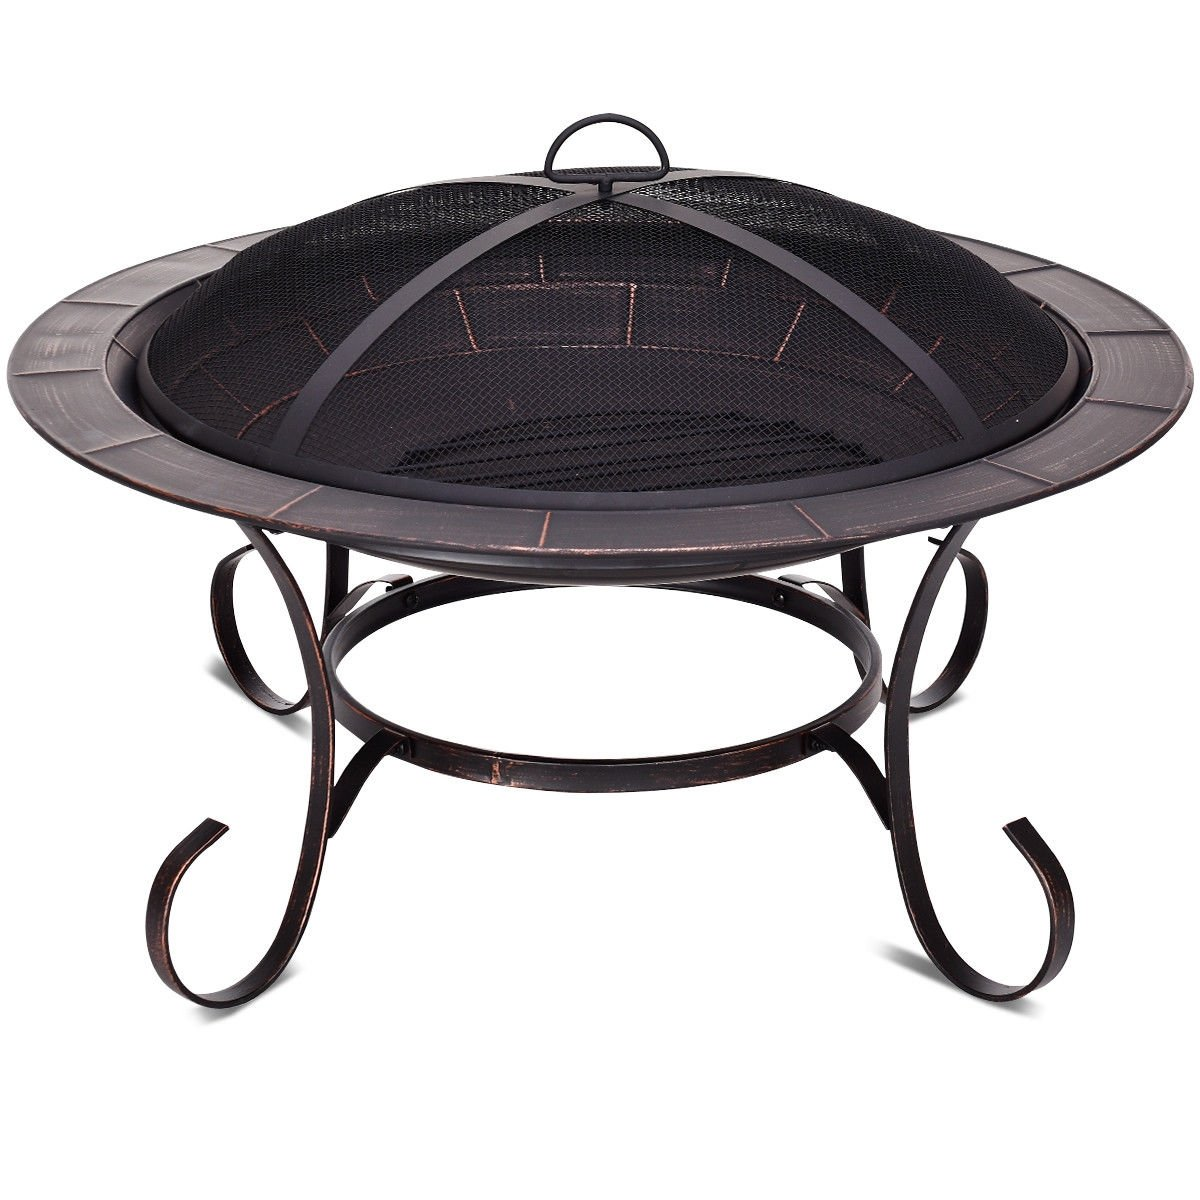 30 outdoor fire pit bbq camping firepit heater fire pit